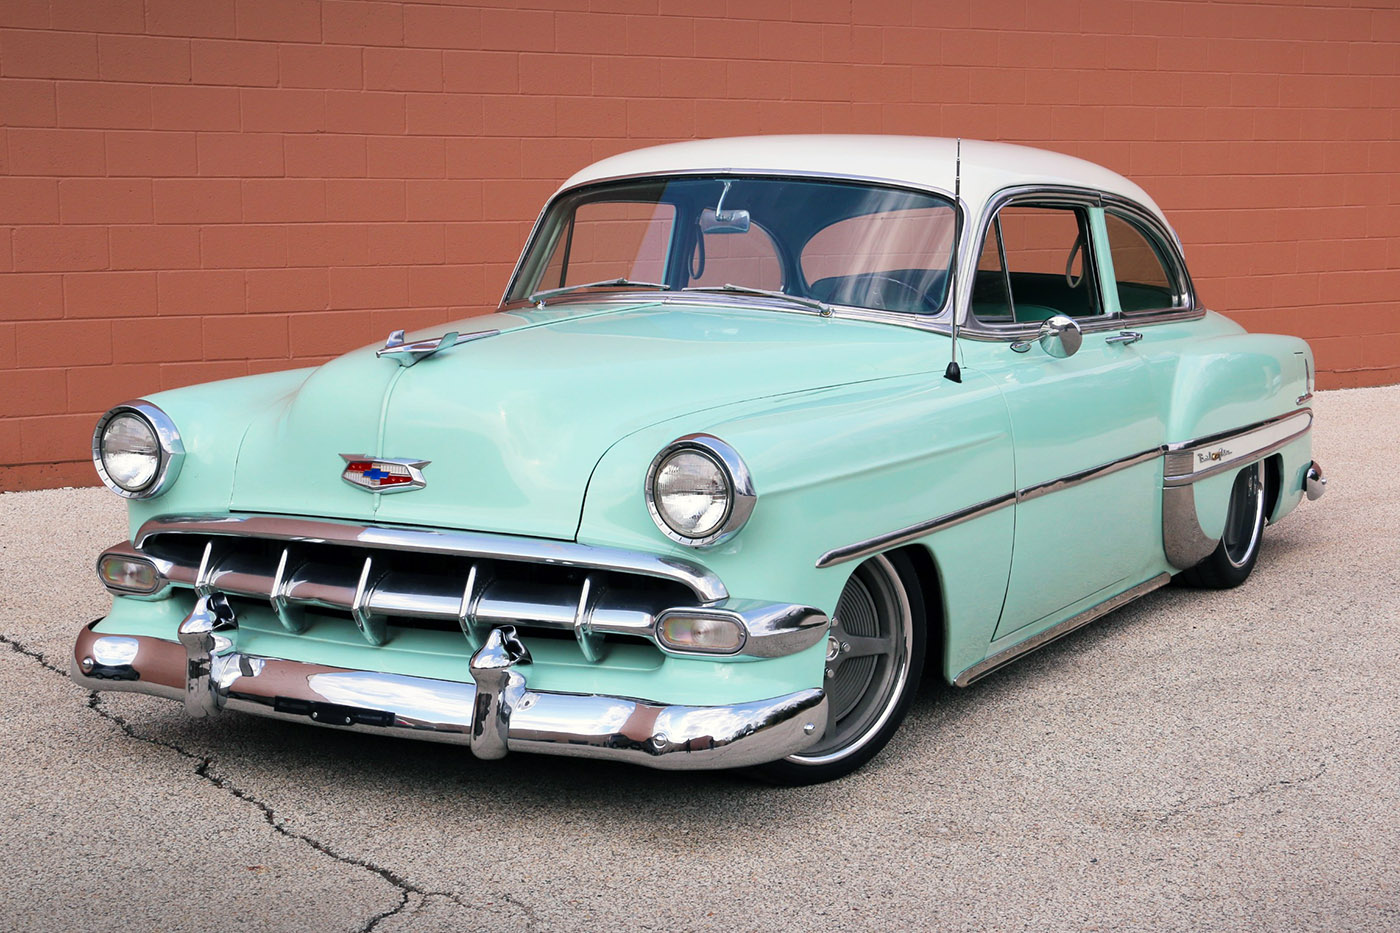 All Chevy 1954 chevy : 1954 Chevy with a Supercharged 454 LSx – Engine Swap Depot